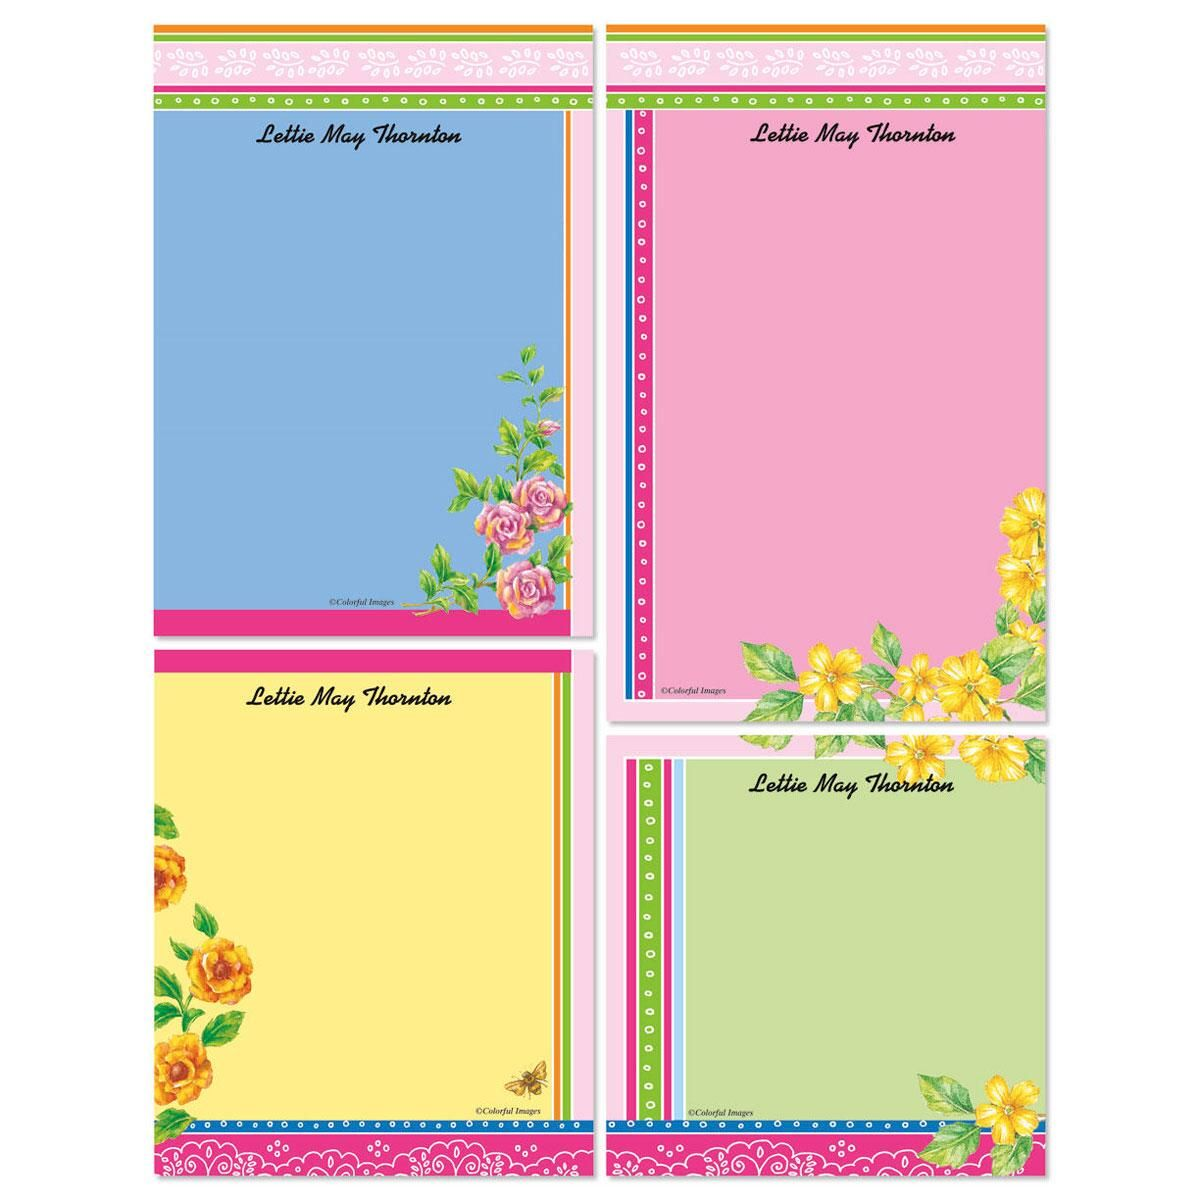 Color Bandana Memo Pad Sets